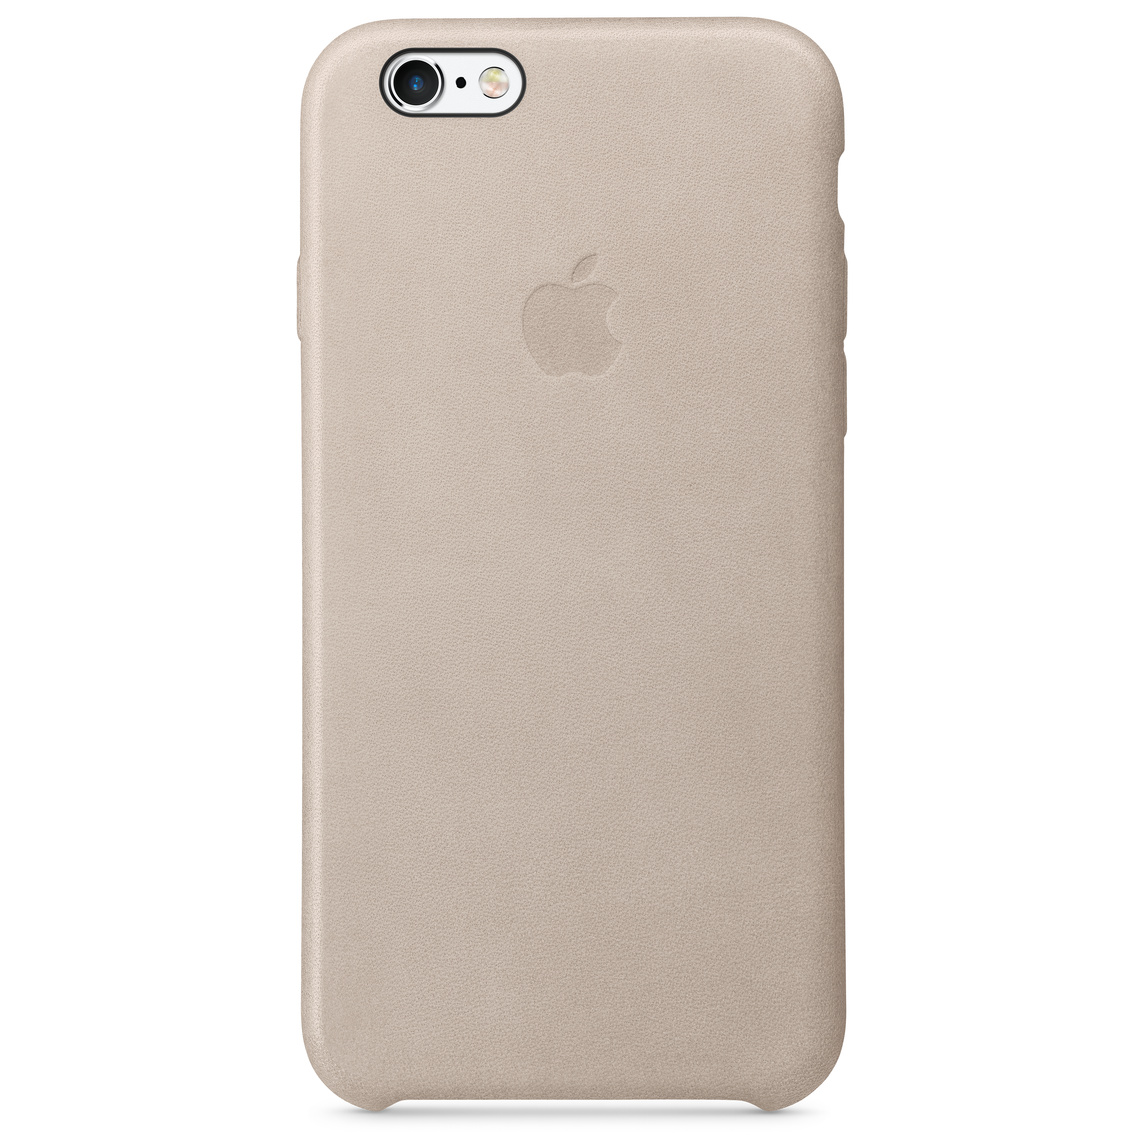 newest e4f2f b1ca3 iPhone 6 / 6s Leather Case - Rose Gray